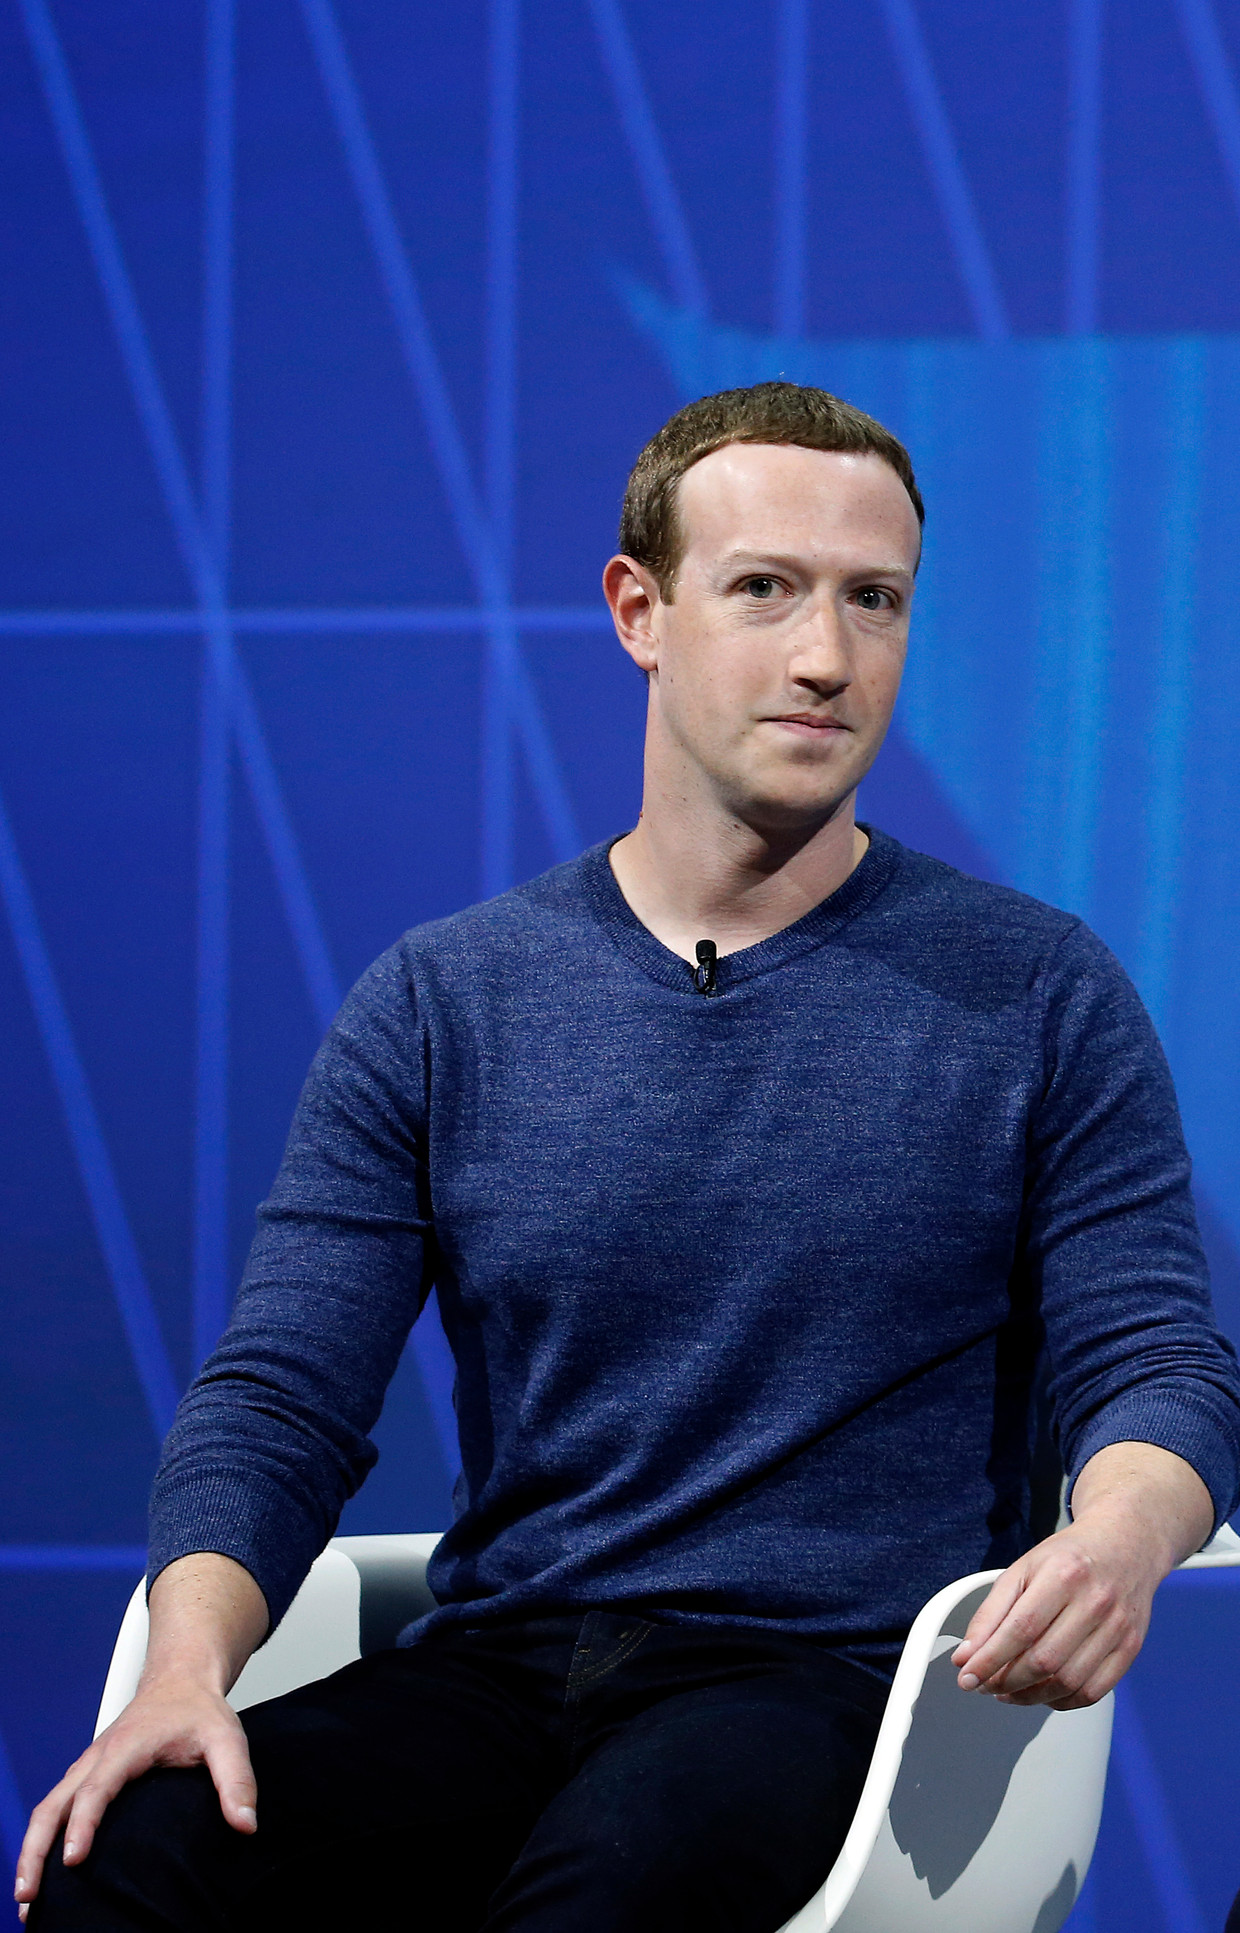 Mark Zuckerberg, stichter en CEO van Facebook. Beeld Getty Images